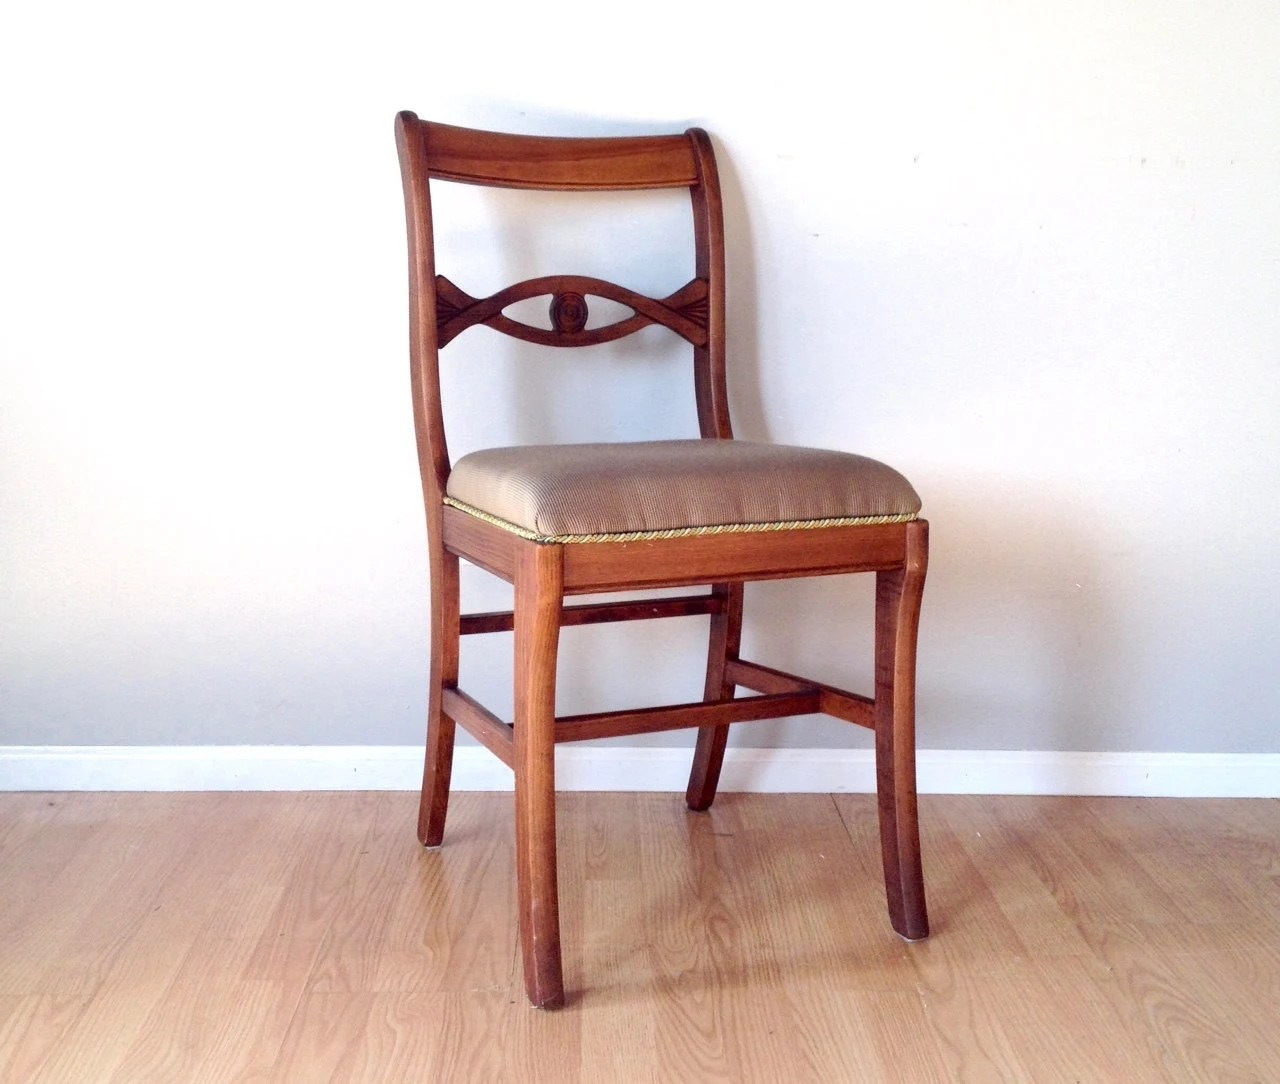 Retro Dining Chair Vintage Tell City Mahogany Chair Retro Furniture Dining Room